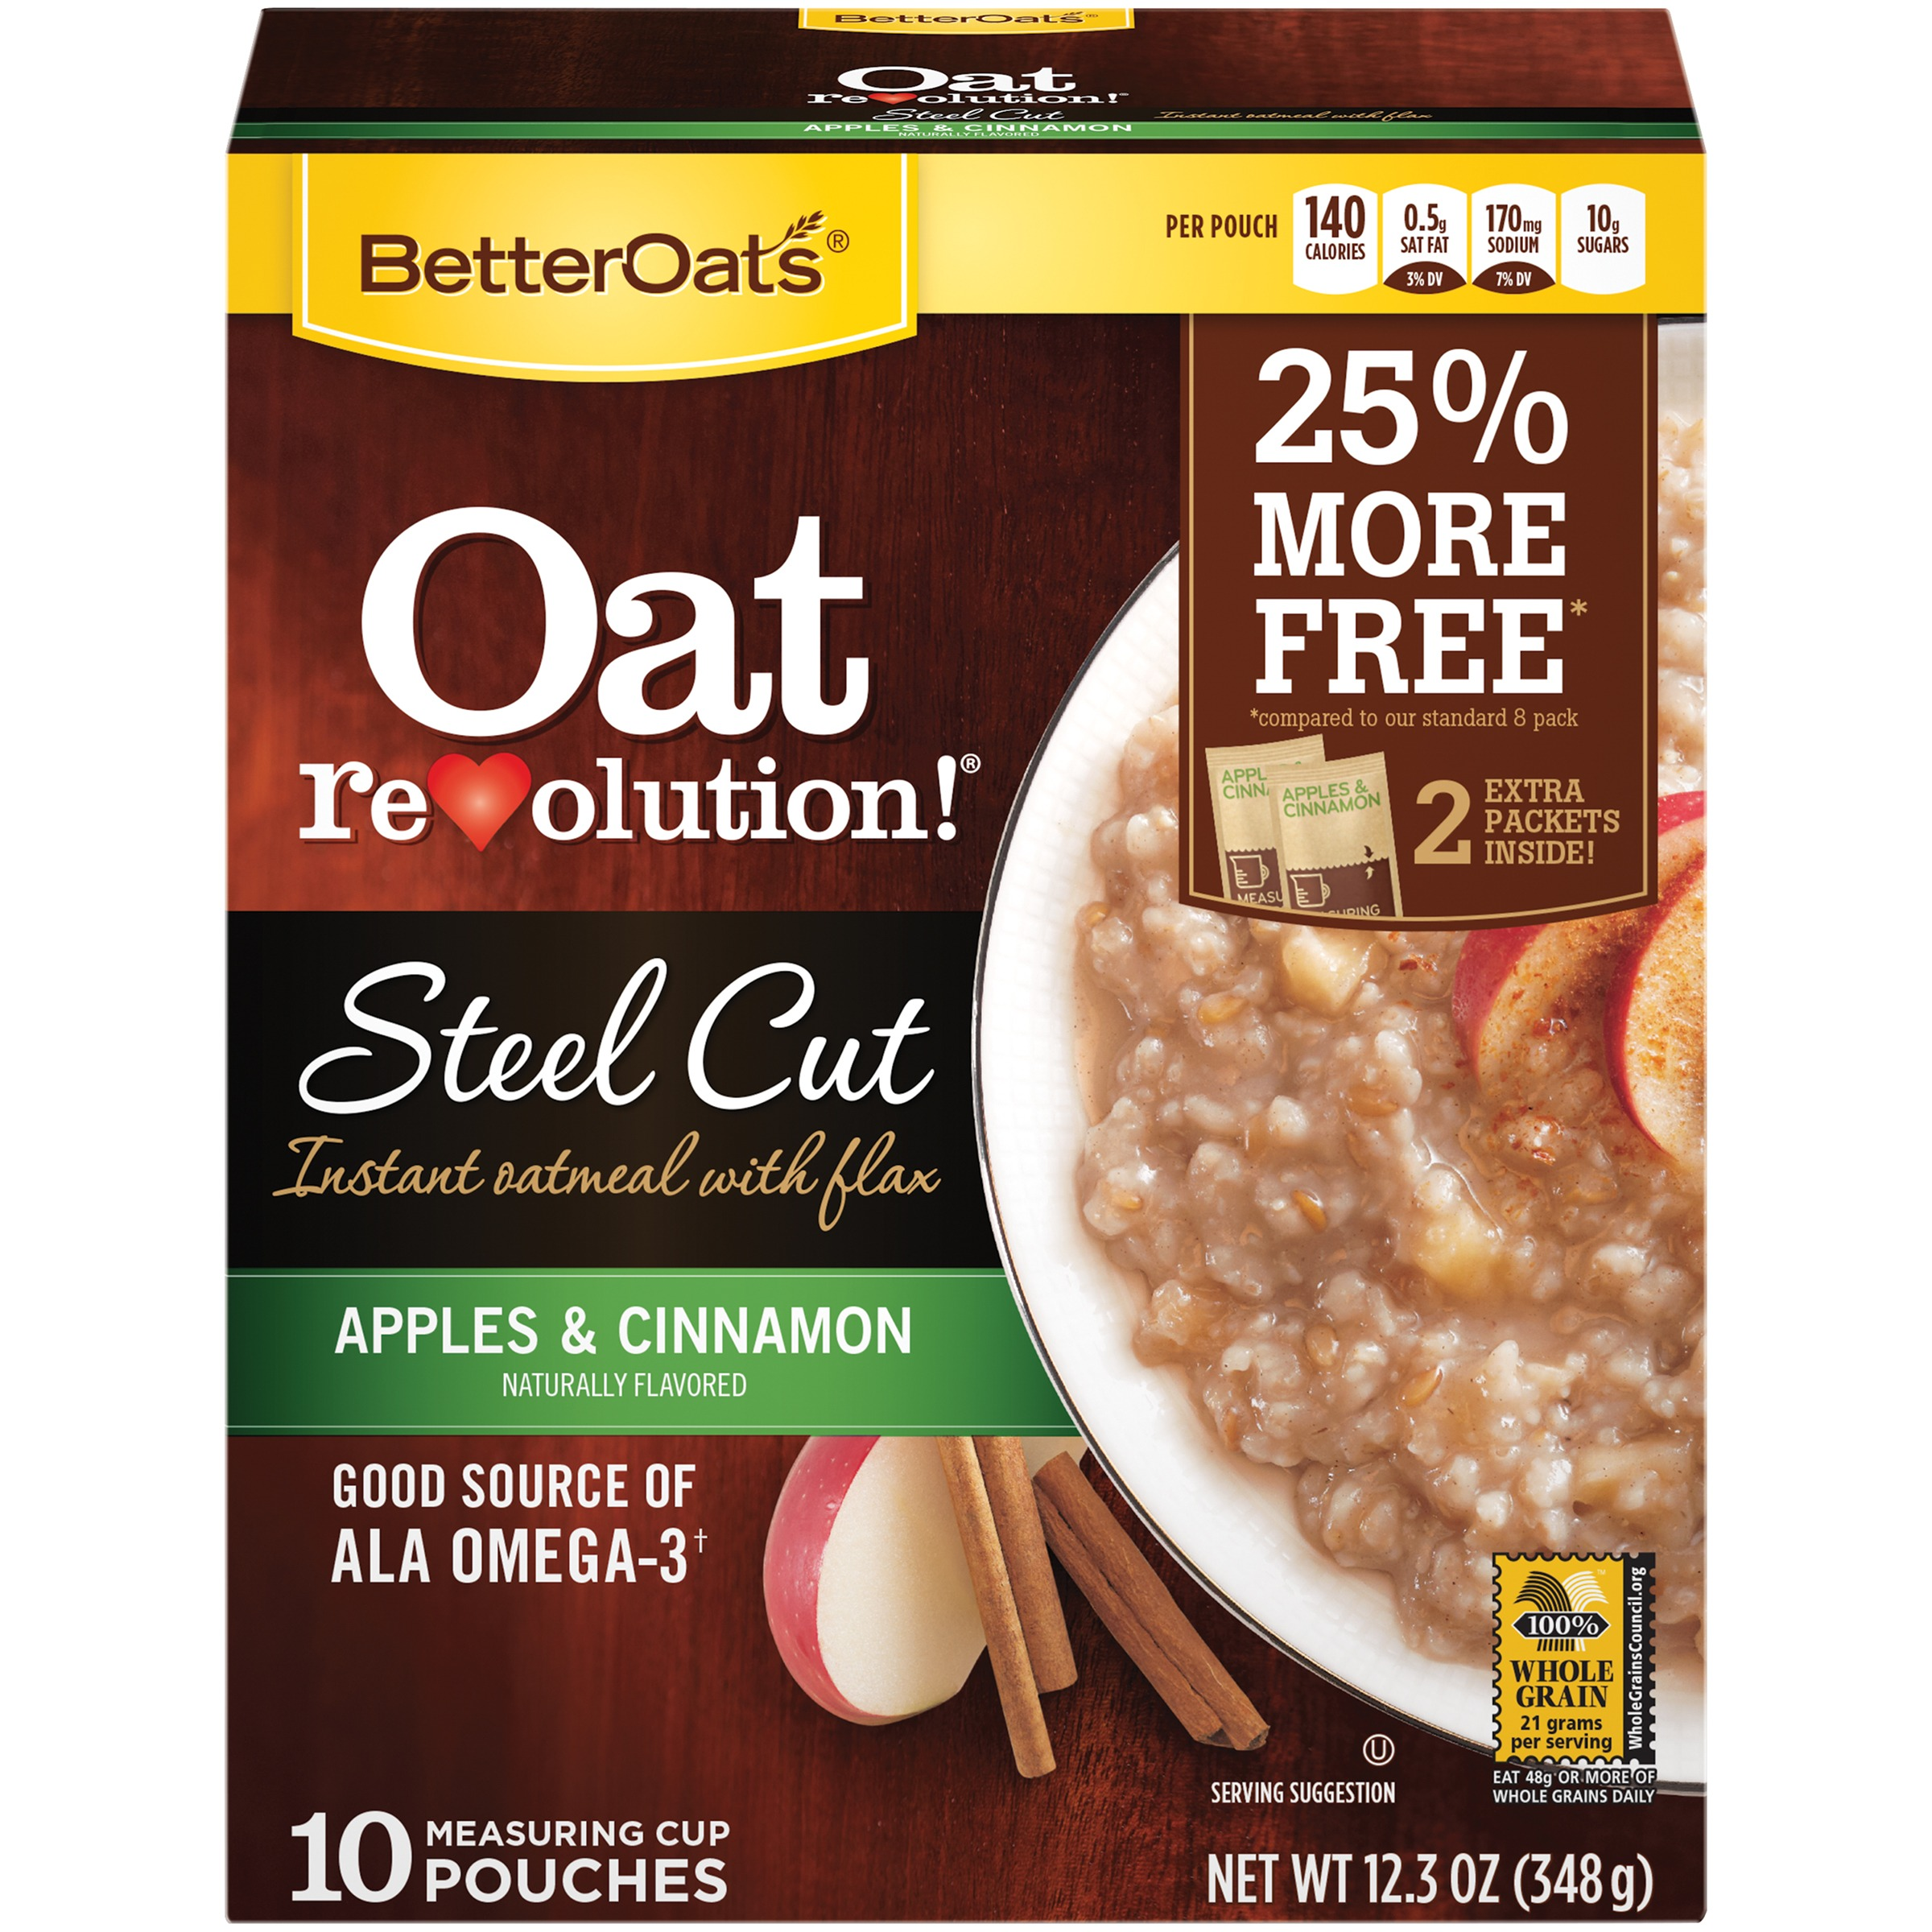 Better Oats® Oat Revolution!® Steel Cut Apples & Cinnamon Instant Oatmeal with Flax 10 ct Box